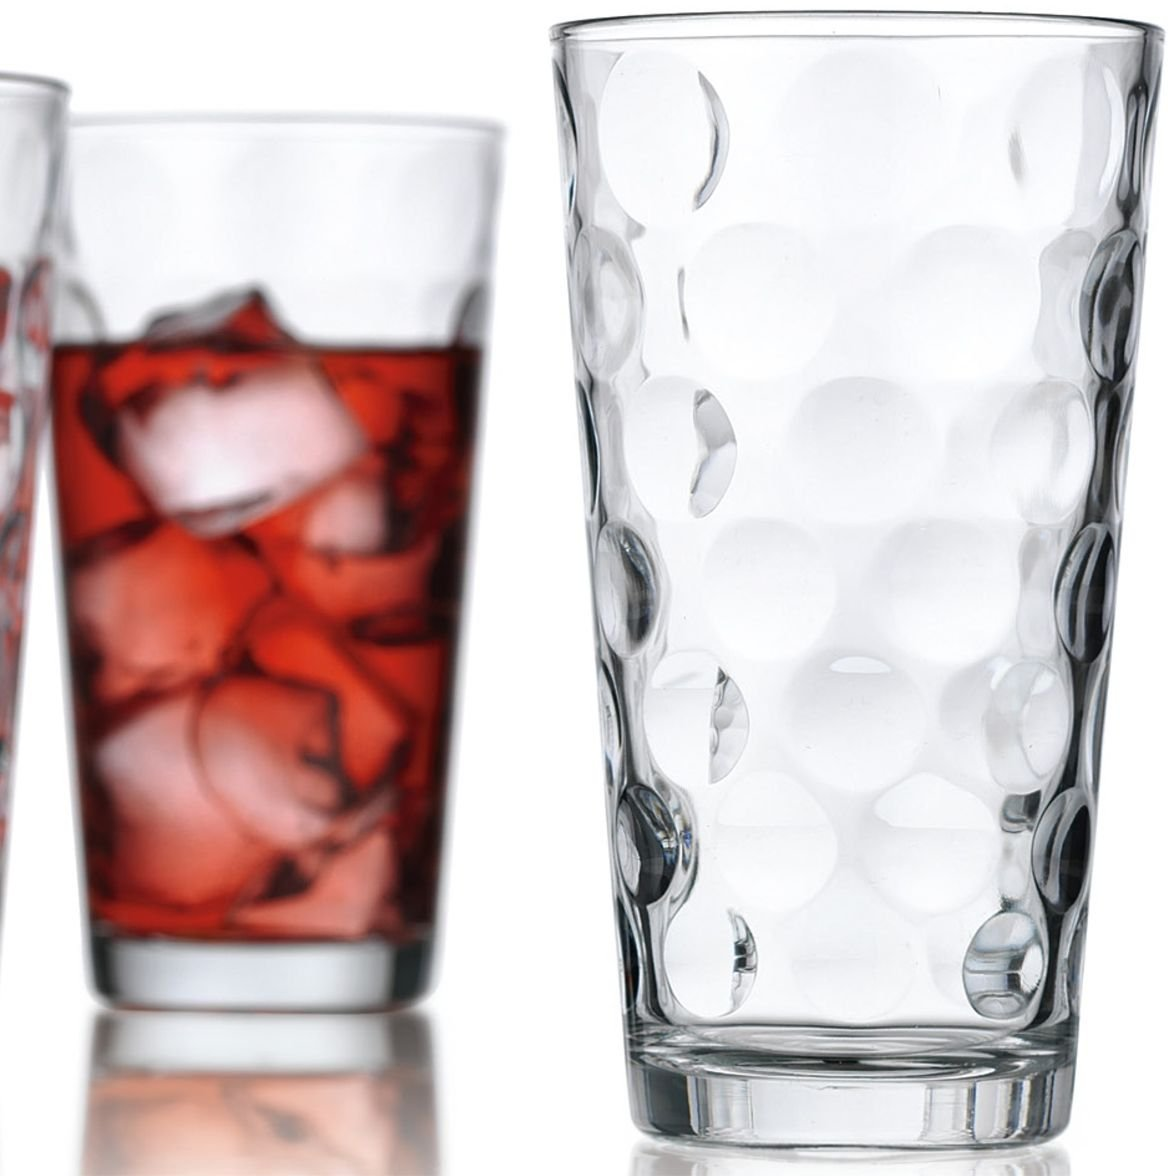 Attractive Bubble Design Highball Glasses Clear Heavy Base Tall Bar Glass Bubble Design - Set Of 10 Drinking Glasses for Water, Juice, Beer, Wine, and Cocktails, 17 ounce by Le'raze